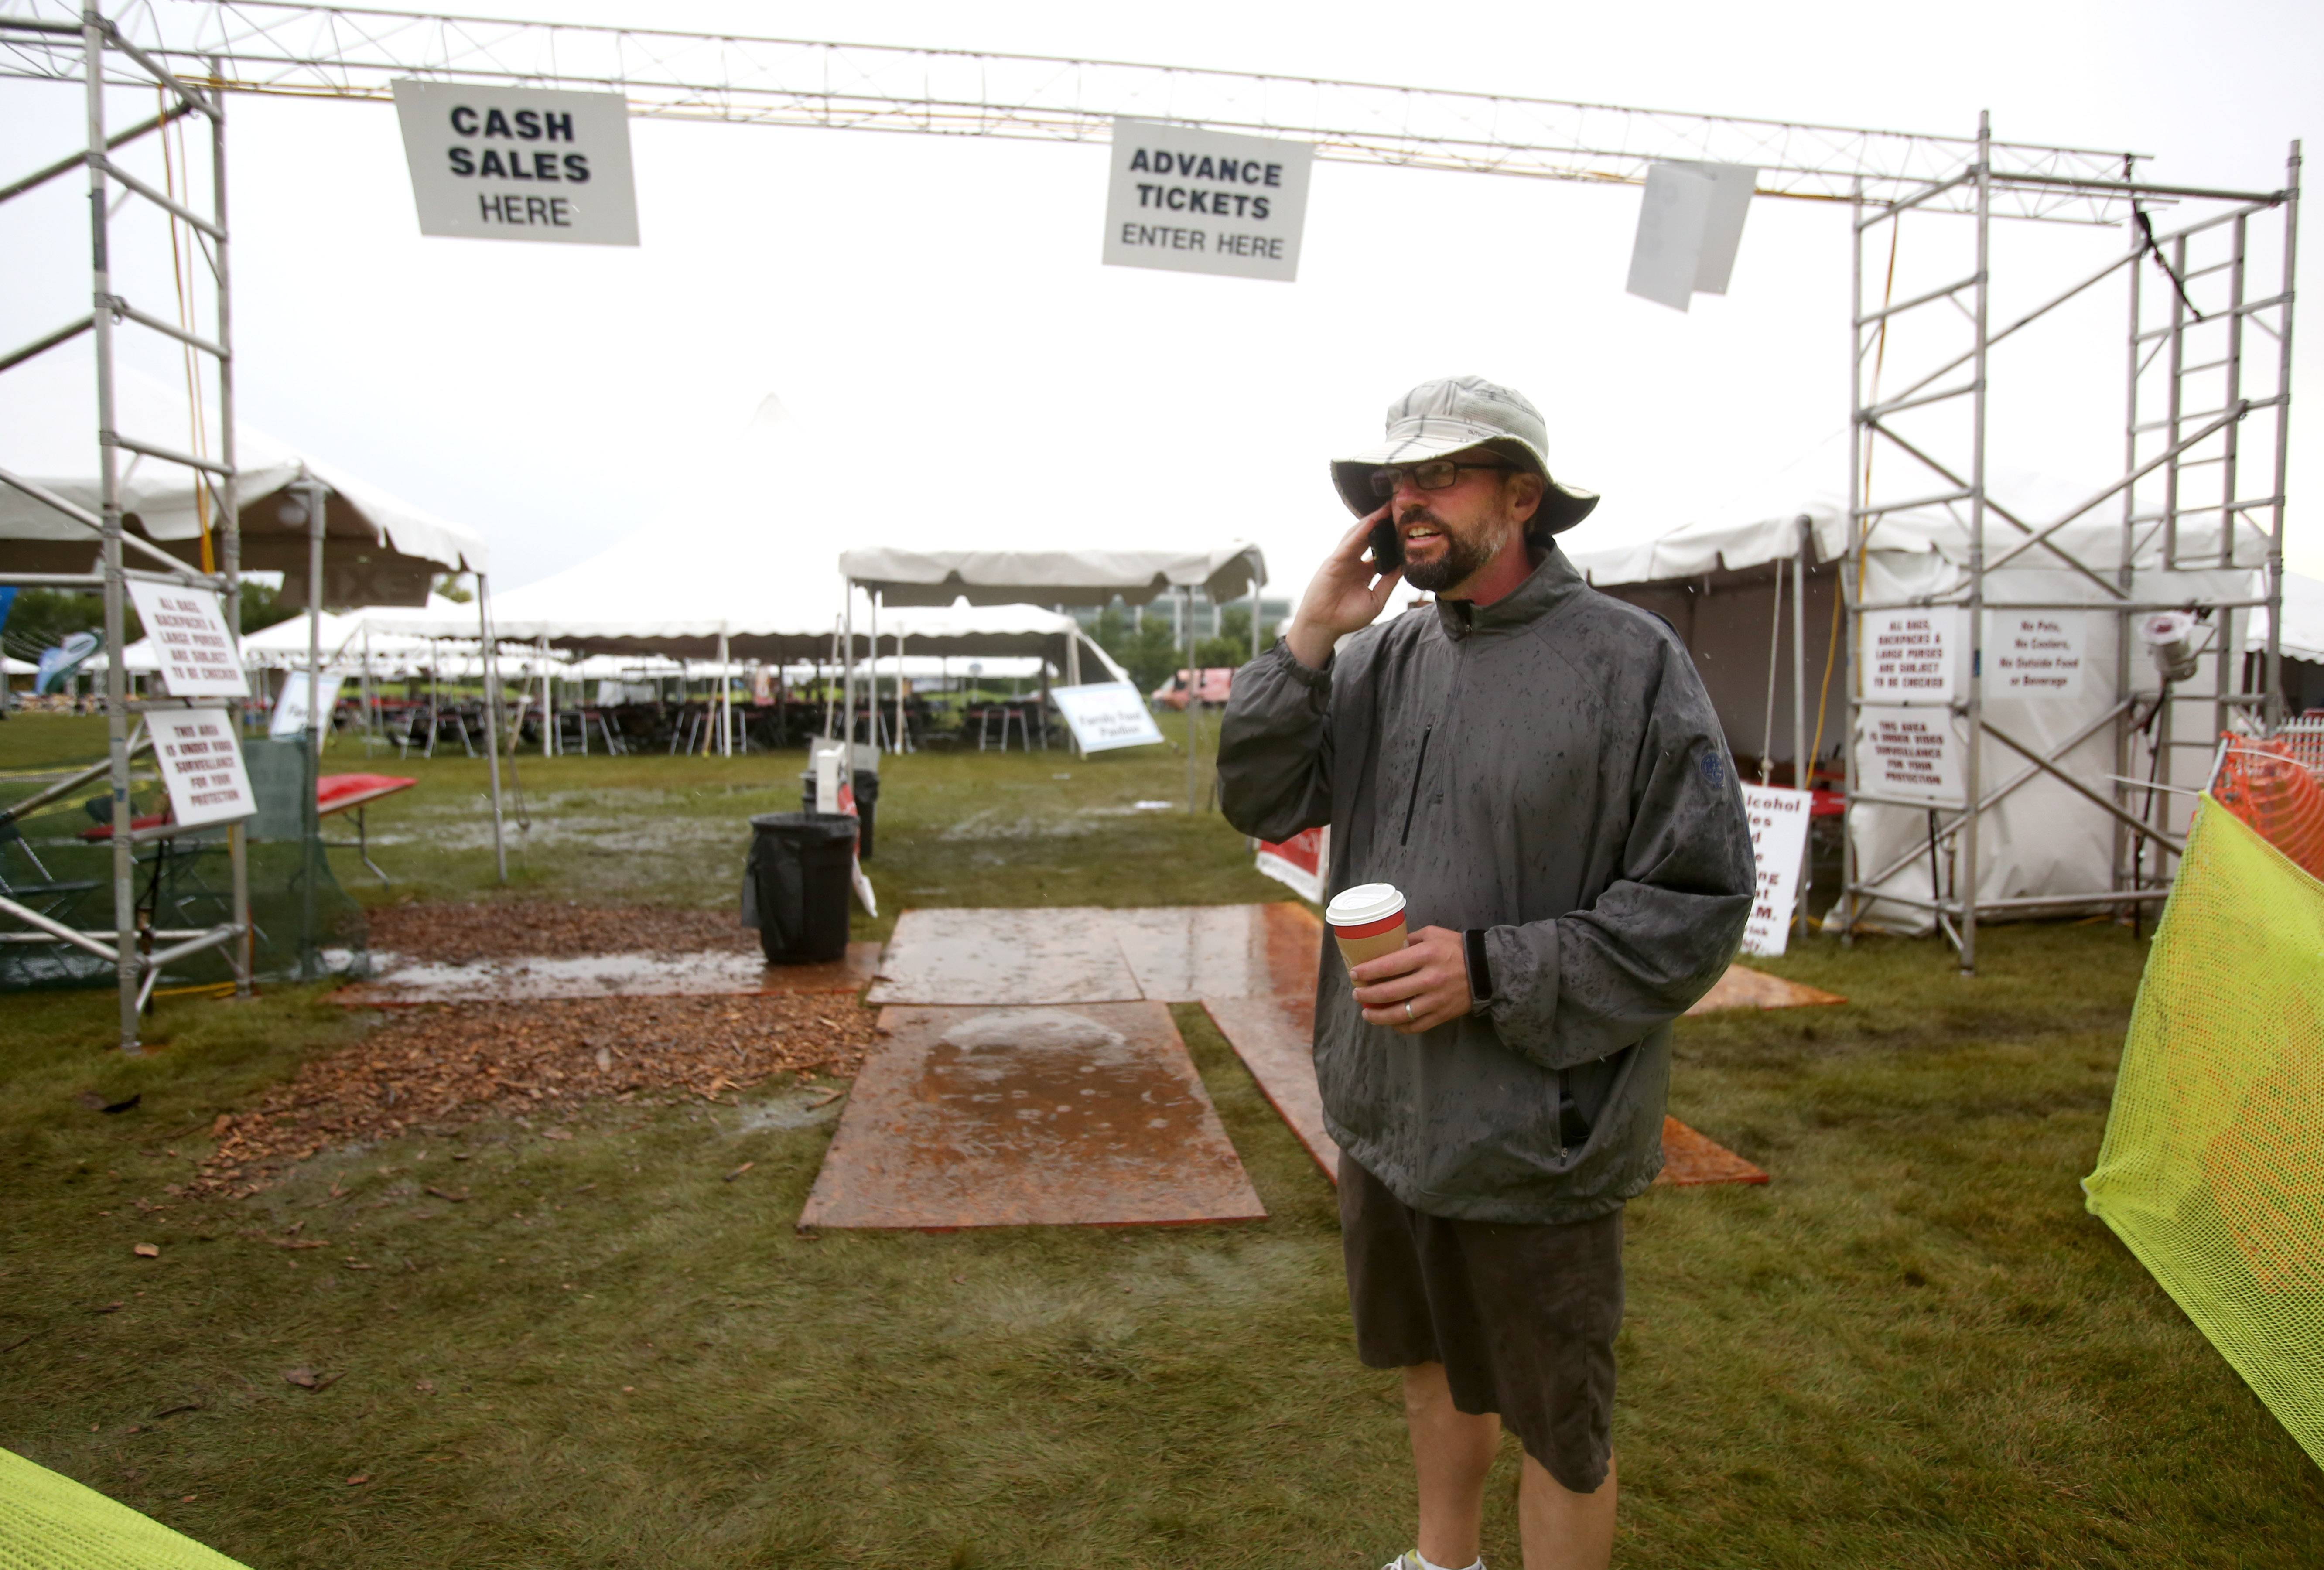 Scott Janess, president of Inplay Events, which has organized the 12th annual Naperville Wine Fest, delays the start of this CityGate Centre event two hours to 5 p.m. due to bad weather.